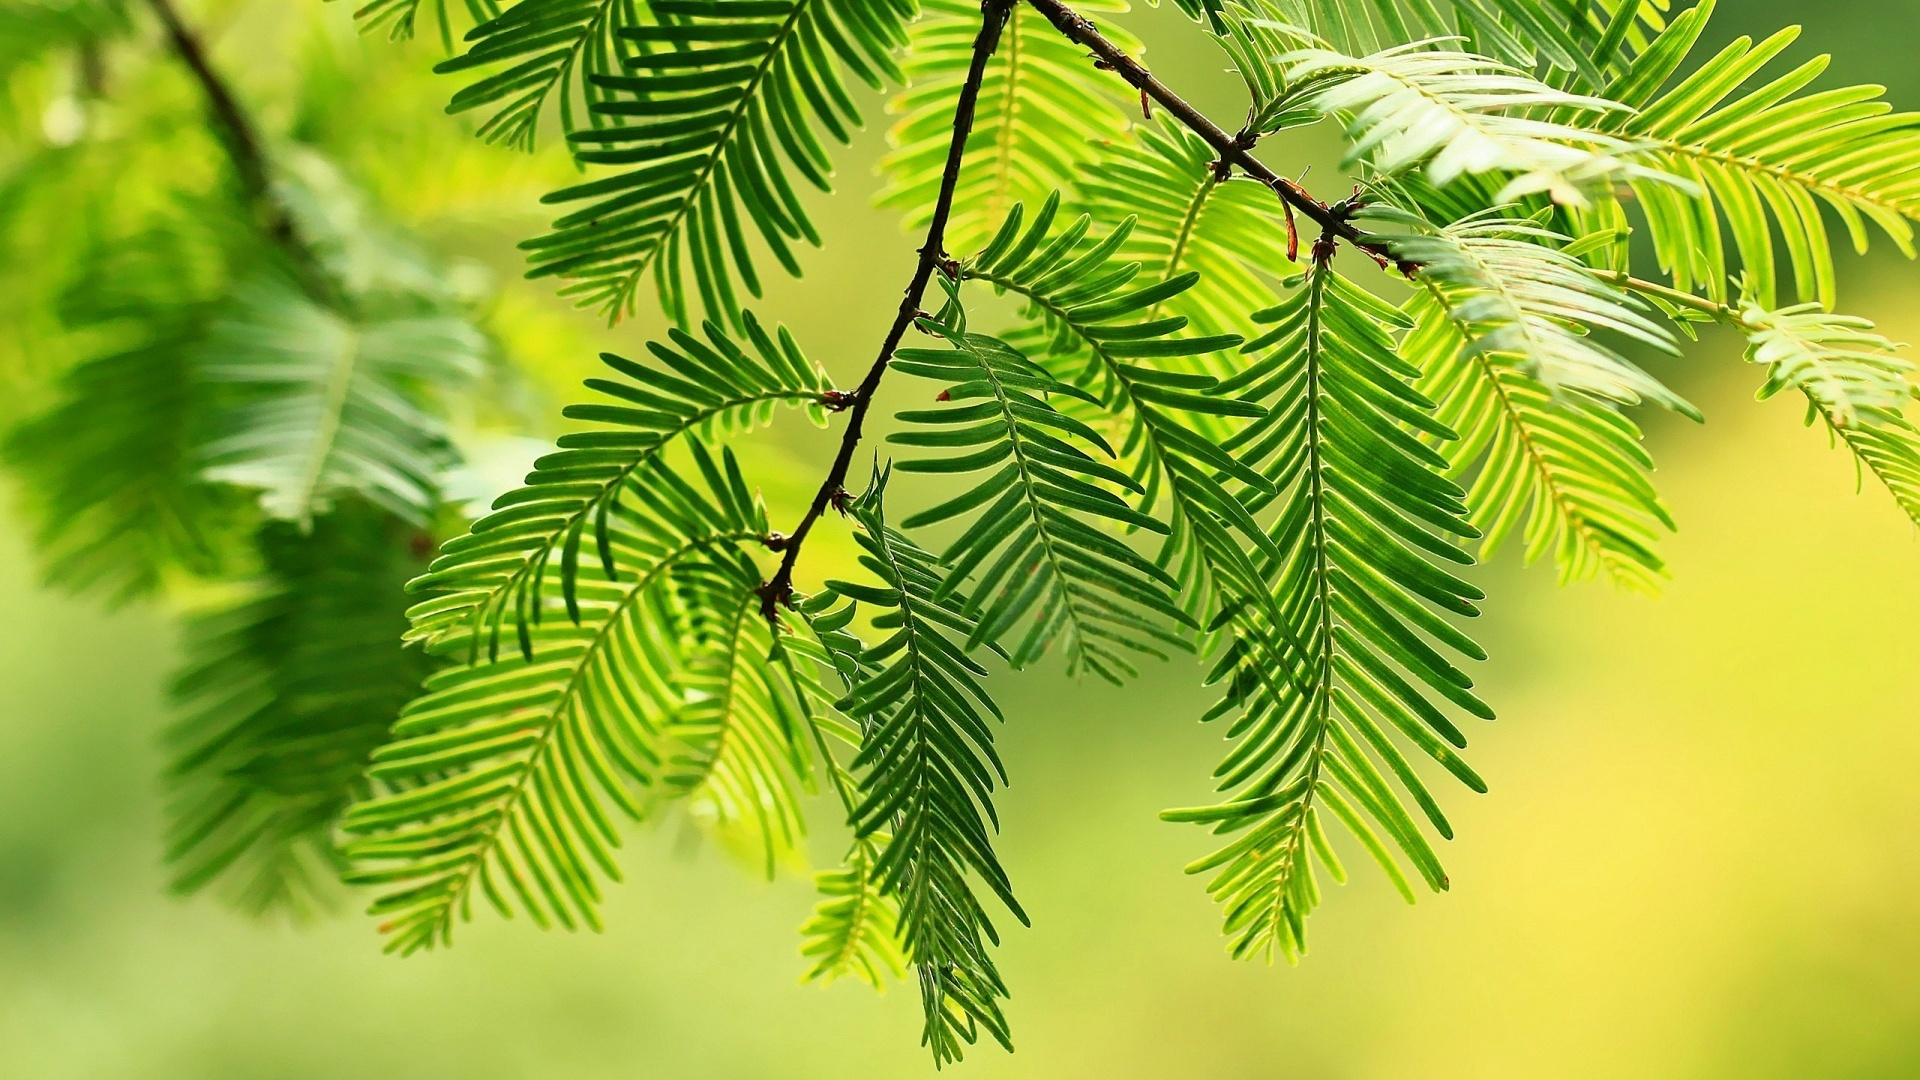 Spruce Branches HD Wallpaper